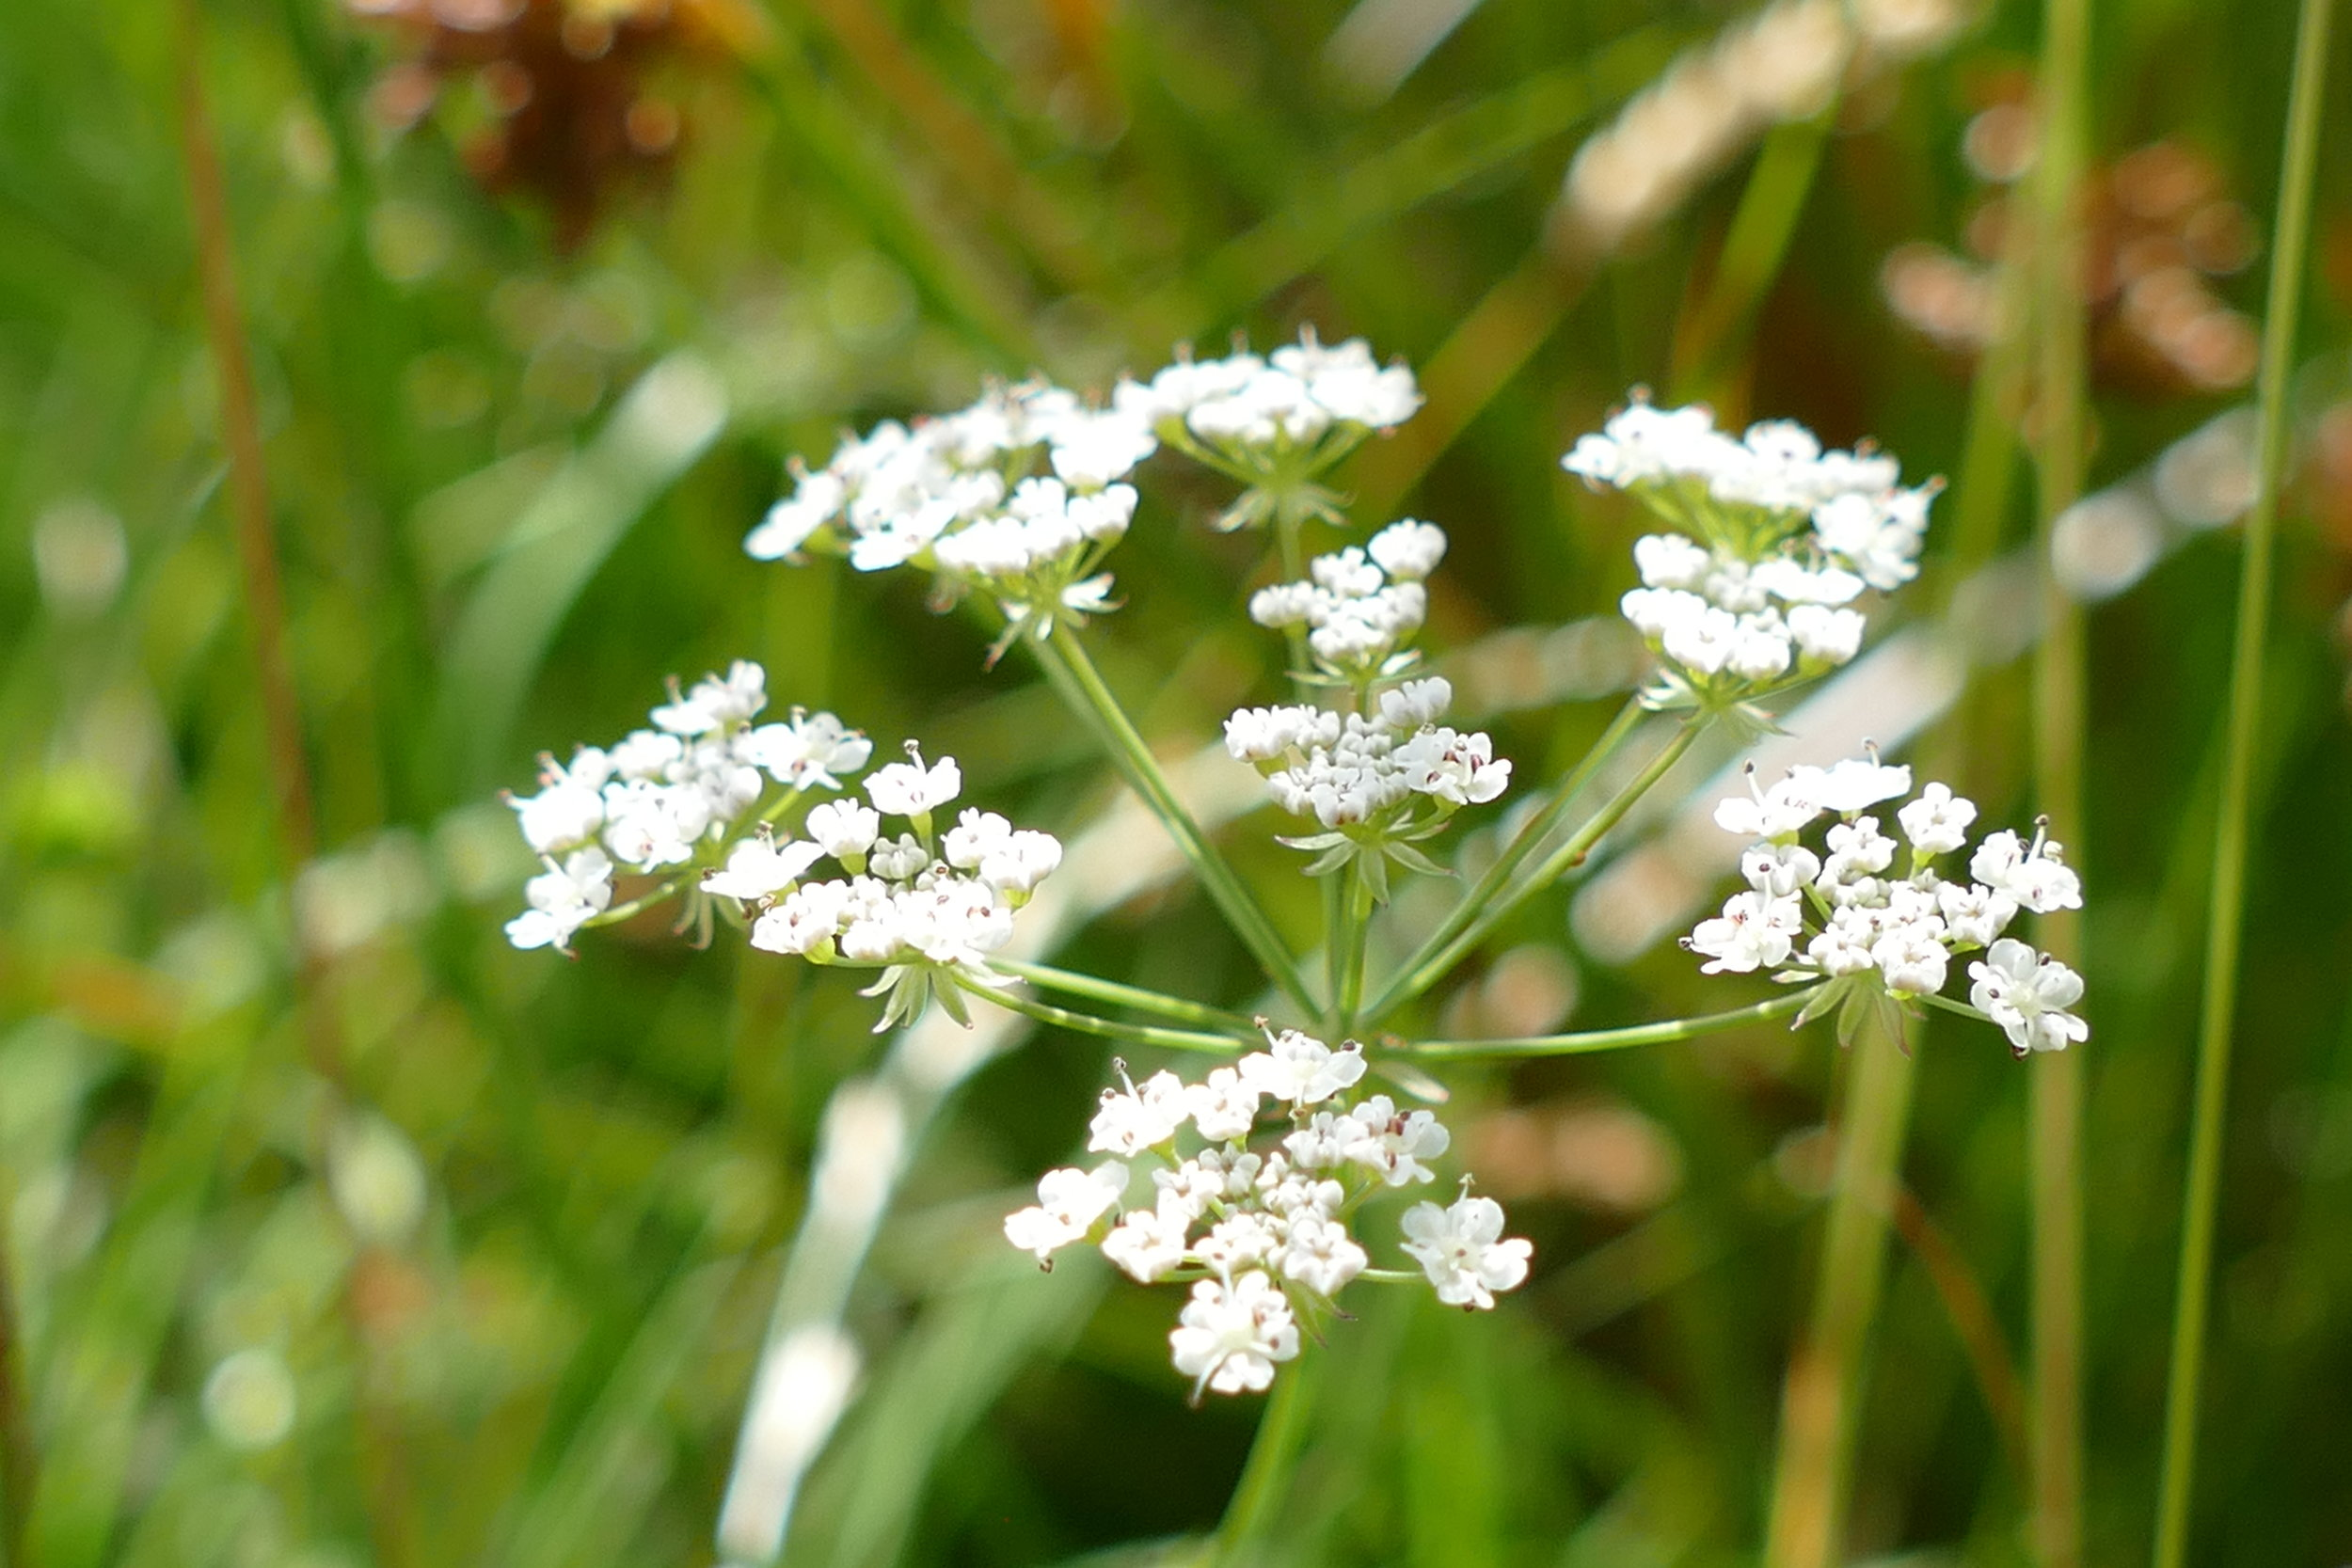 Whorled caraway, a signature plant of the diminishing damp 'rhos' (rough) pasture habitat of mid-Wales, has returned to Lofftwen.